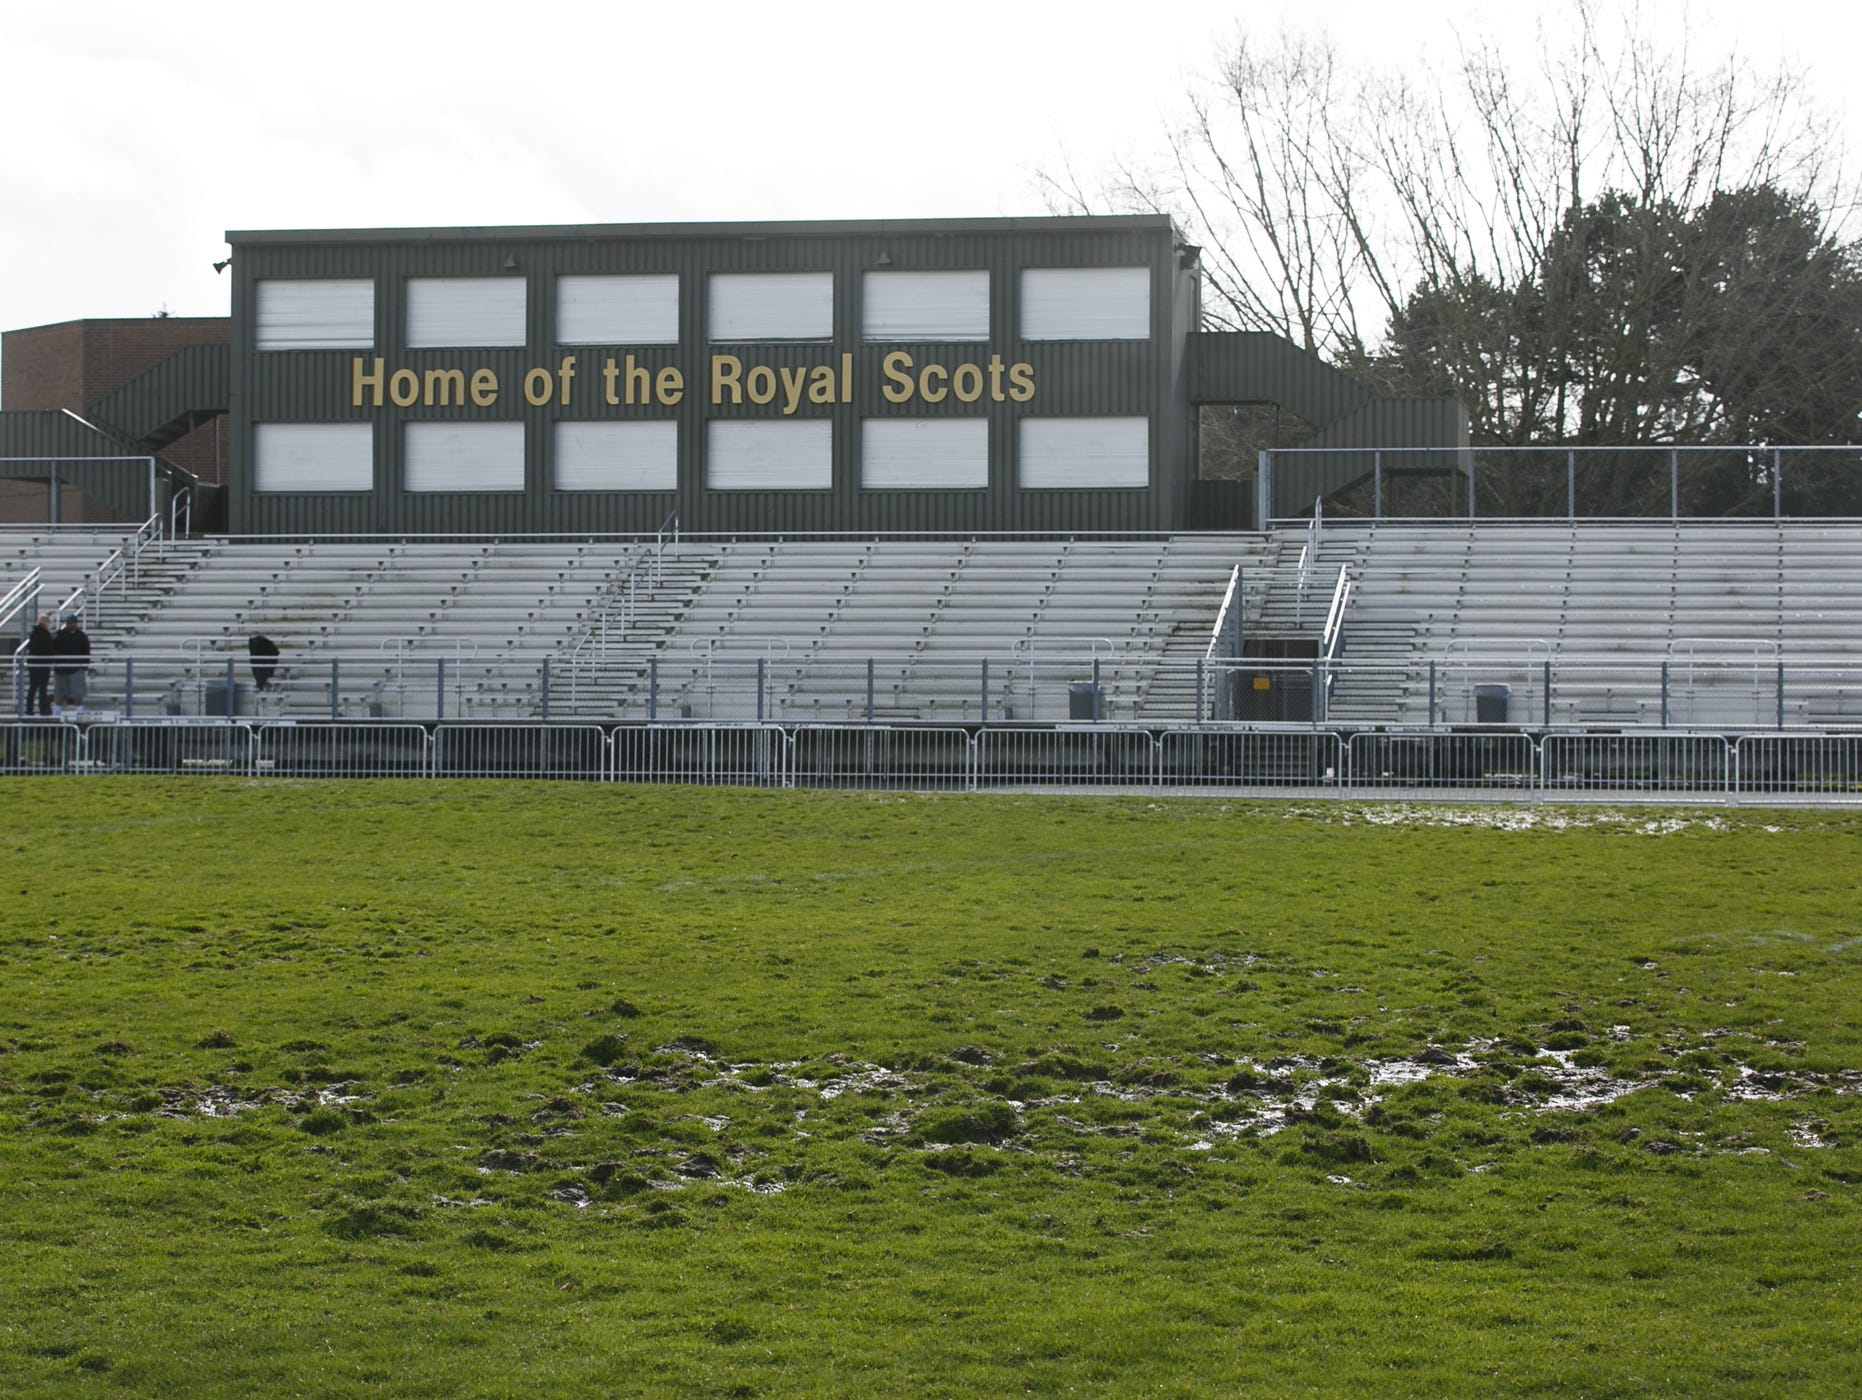 McKay High School is the last high school in the Salem-Keizer district still playing on a grass football field, pictured here on Friday, March 24, 2017. After a long fundraising effort, they are expecting to have a turf field by the start of the 2017 fall season.